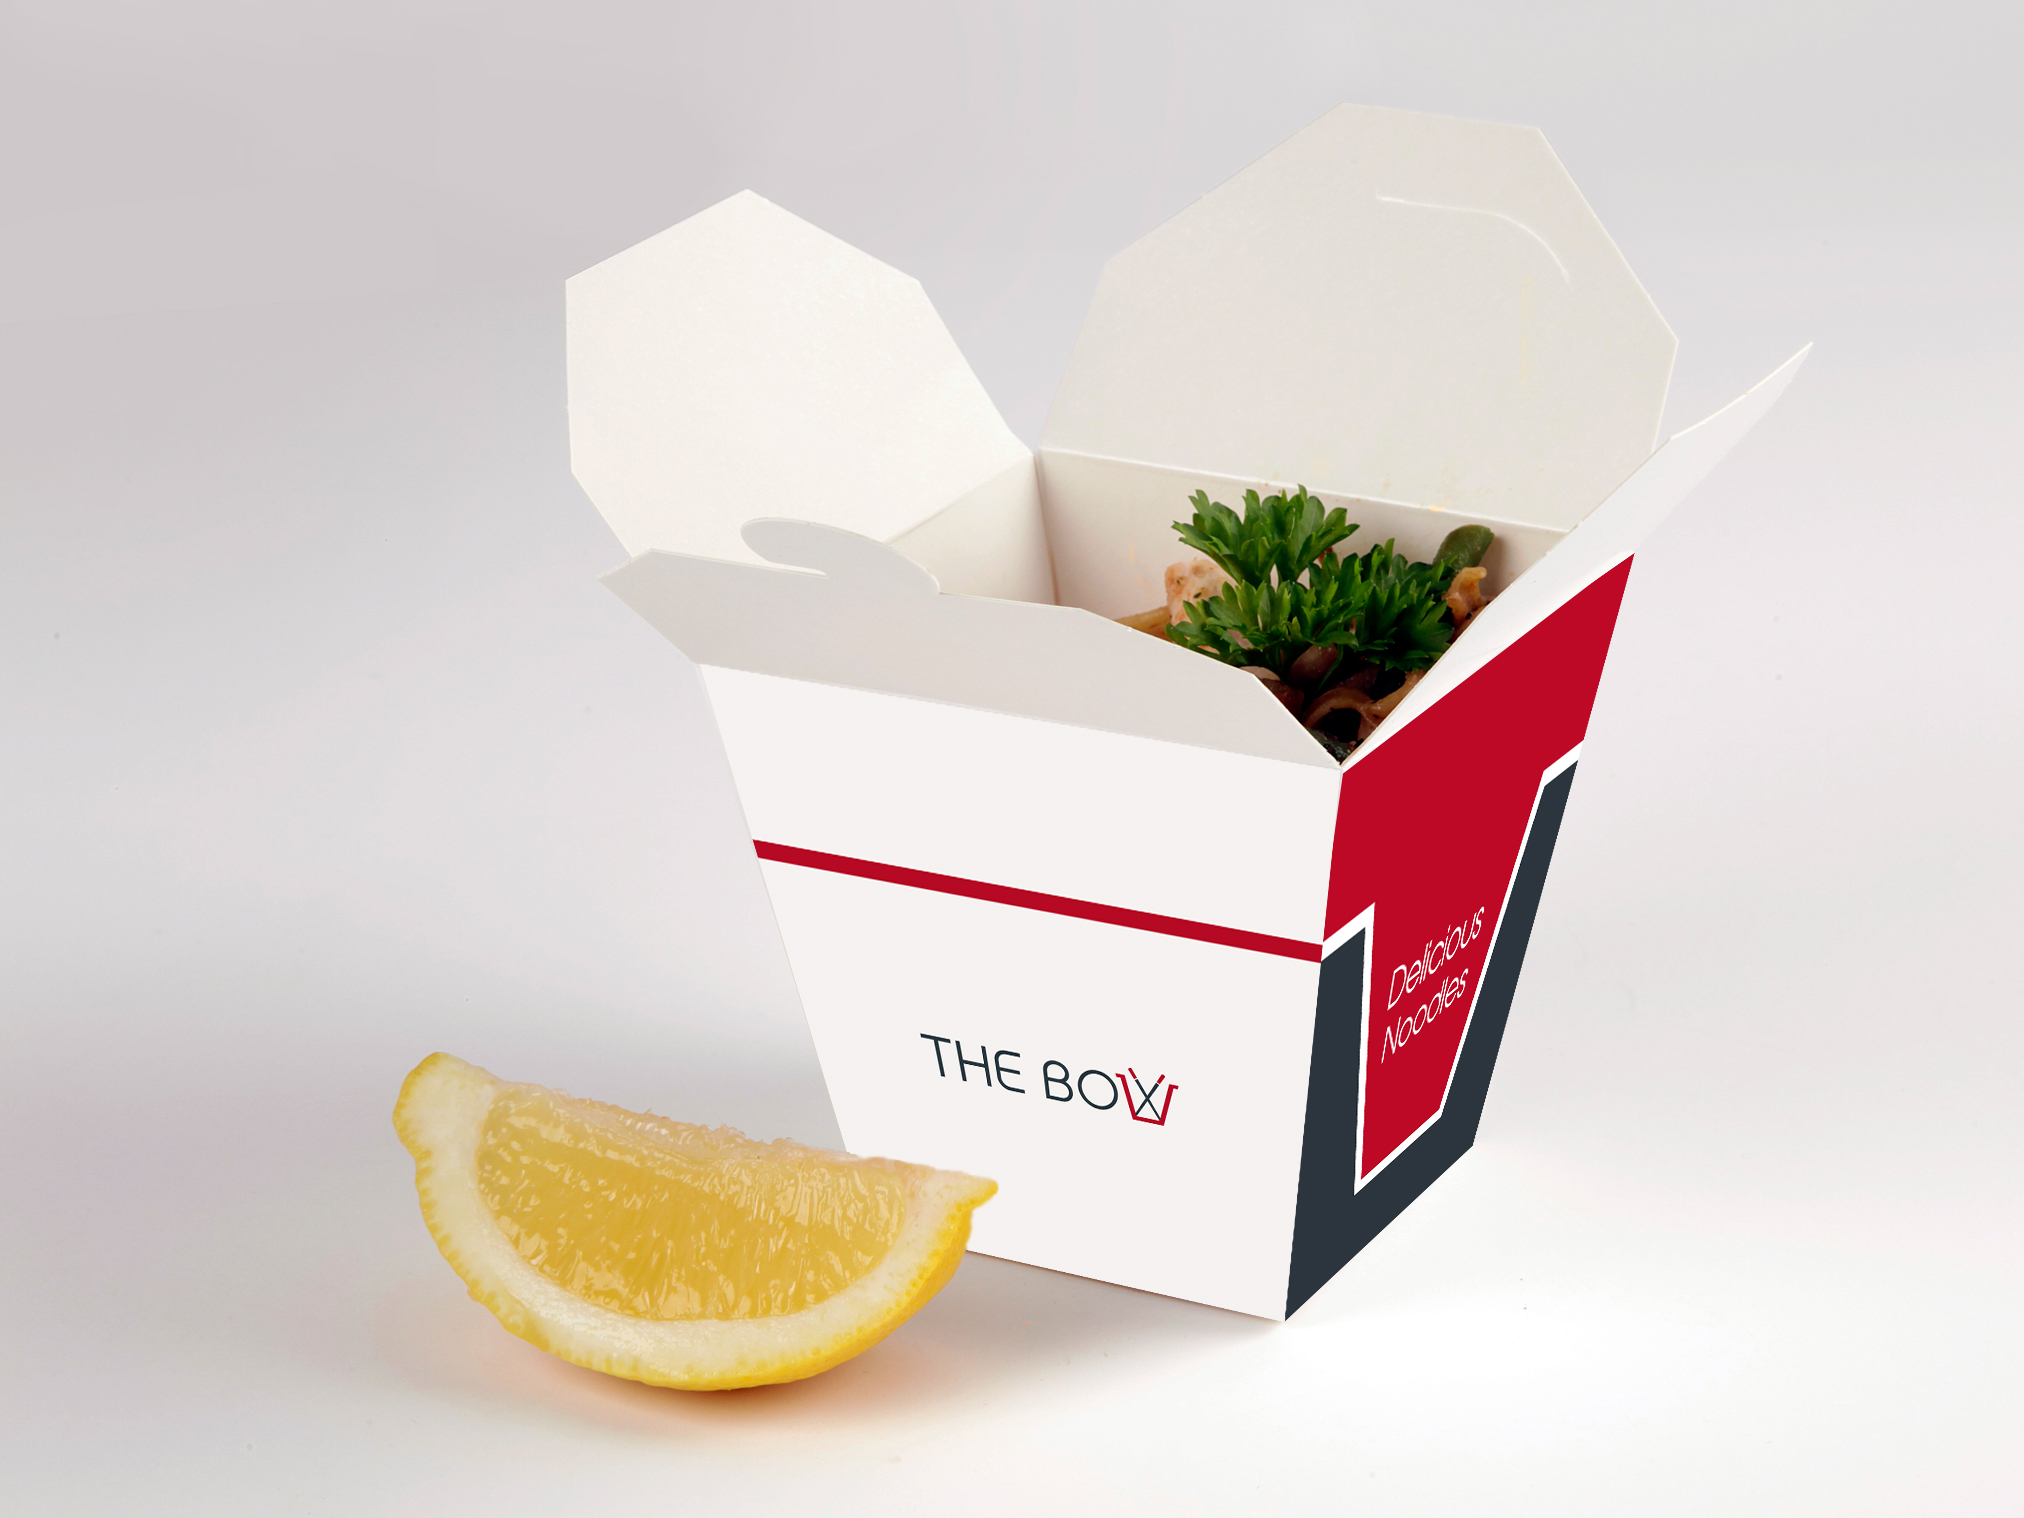 Noodles package